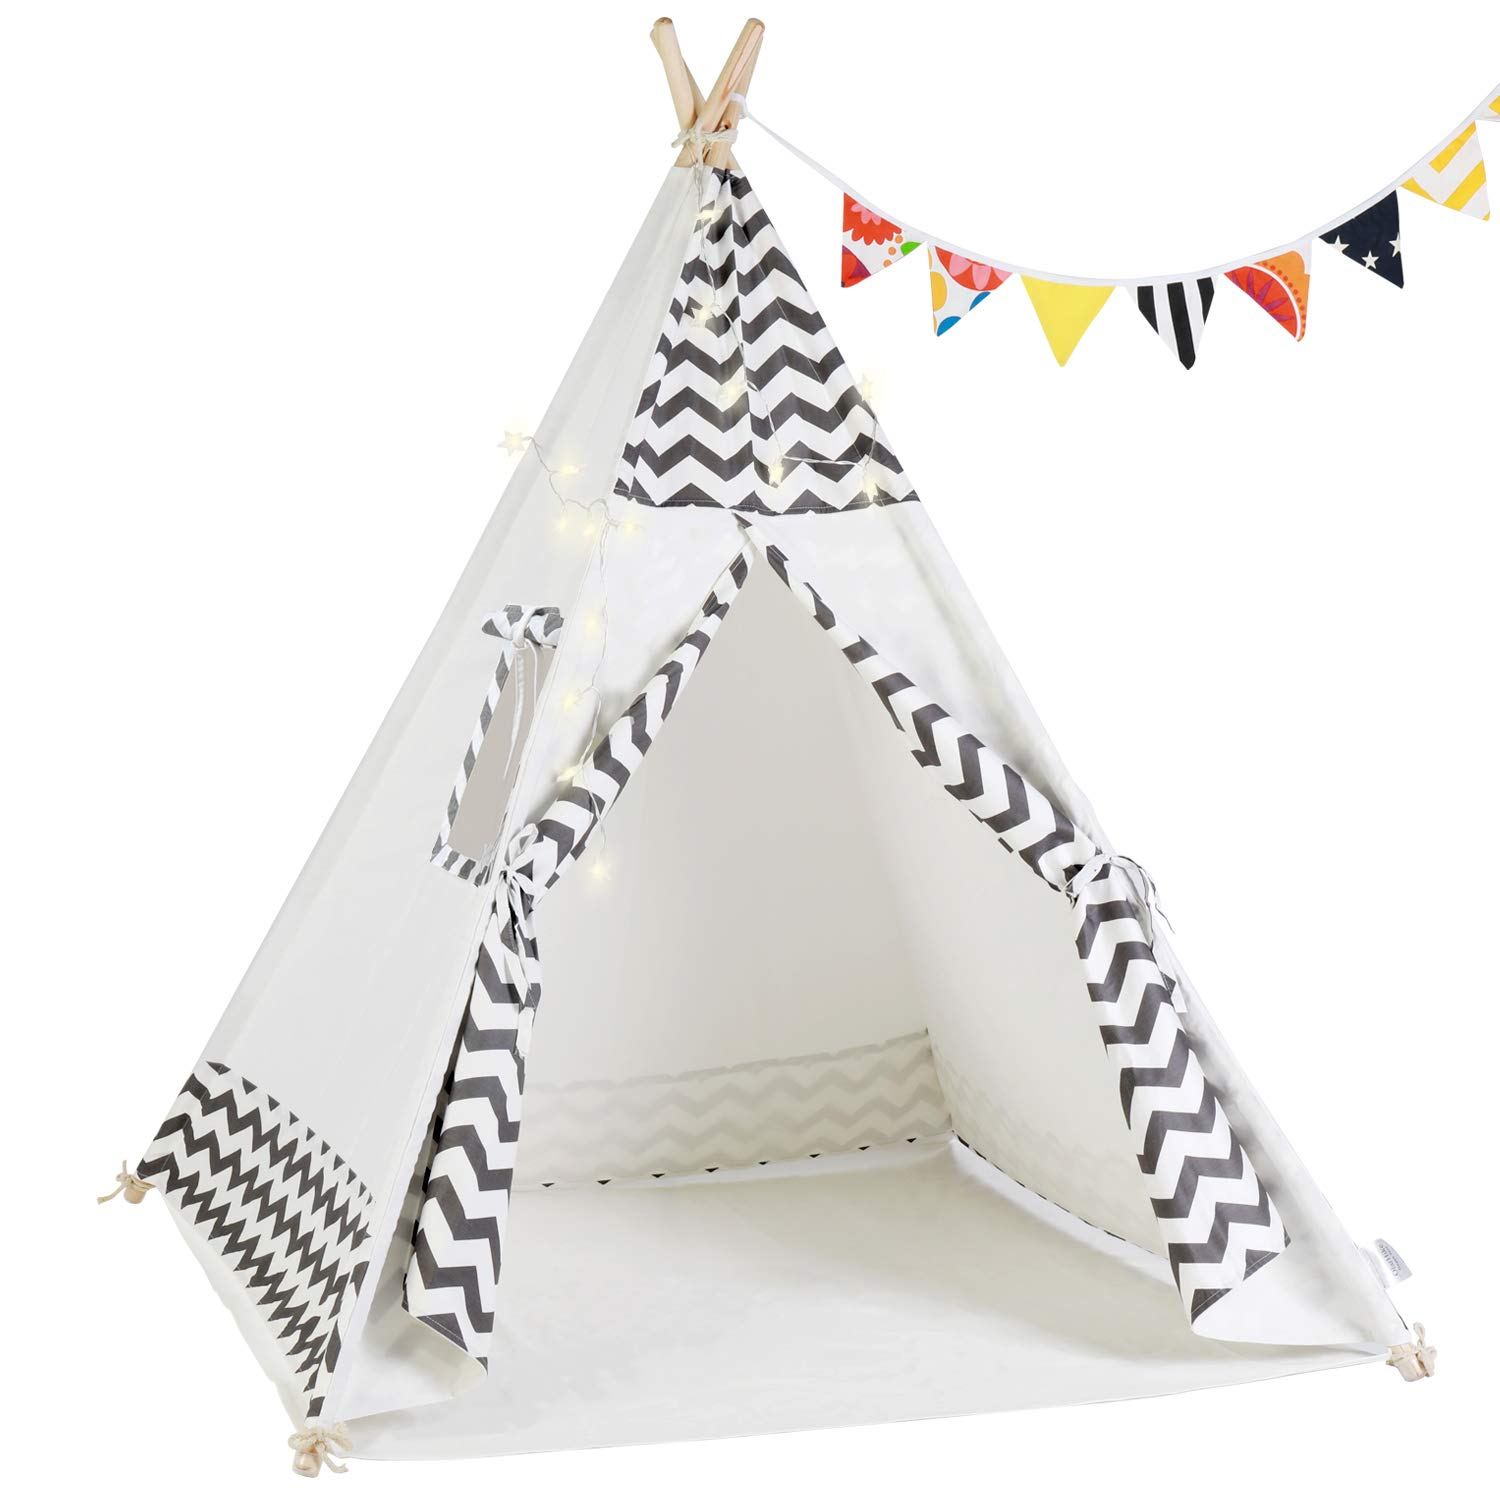 OlarHike Teepee Play Tent for Kids,Girl and Boy, Durable Baby Toddler Tents with Window, Colorful Lights, Flag, Carpet, Non-Slip Base. by OlarHike